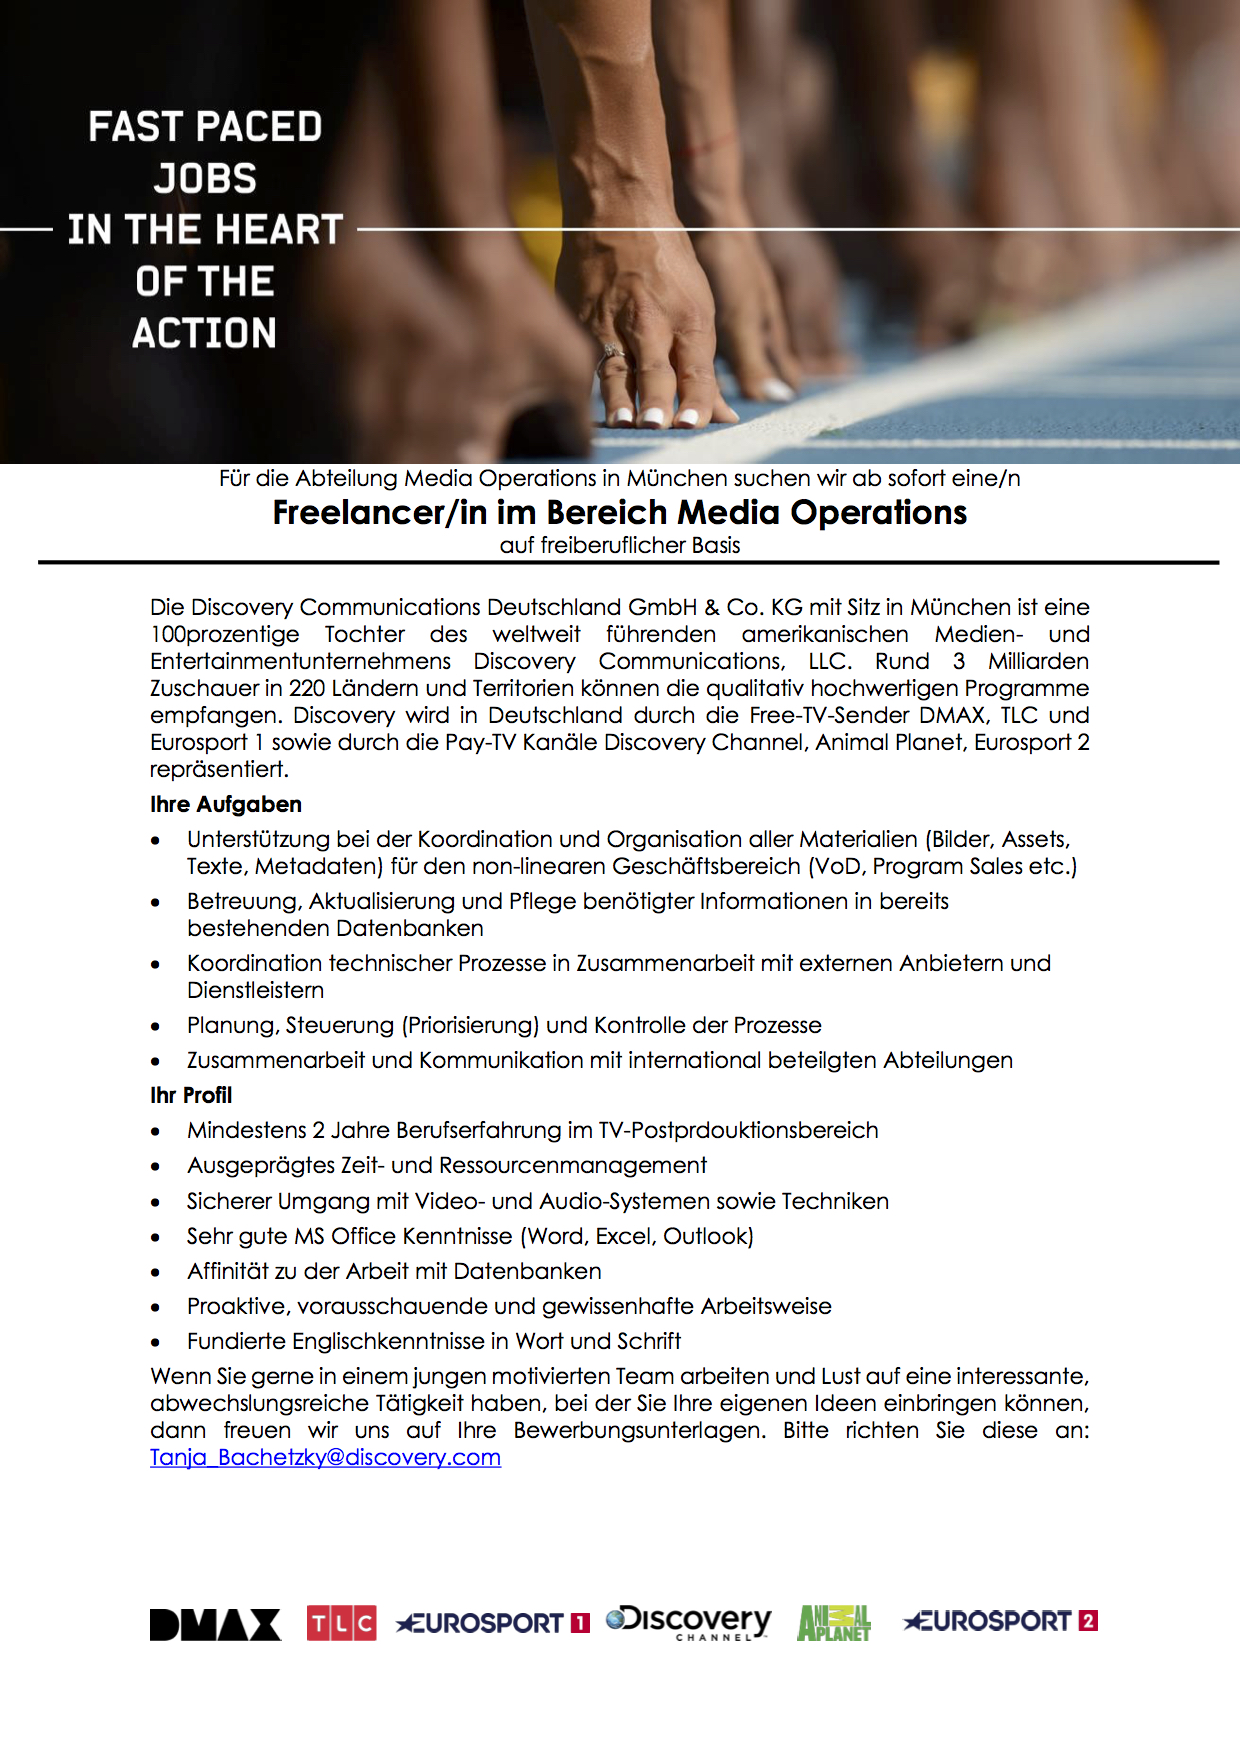 Freelancer/in im Bereich Media Operations